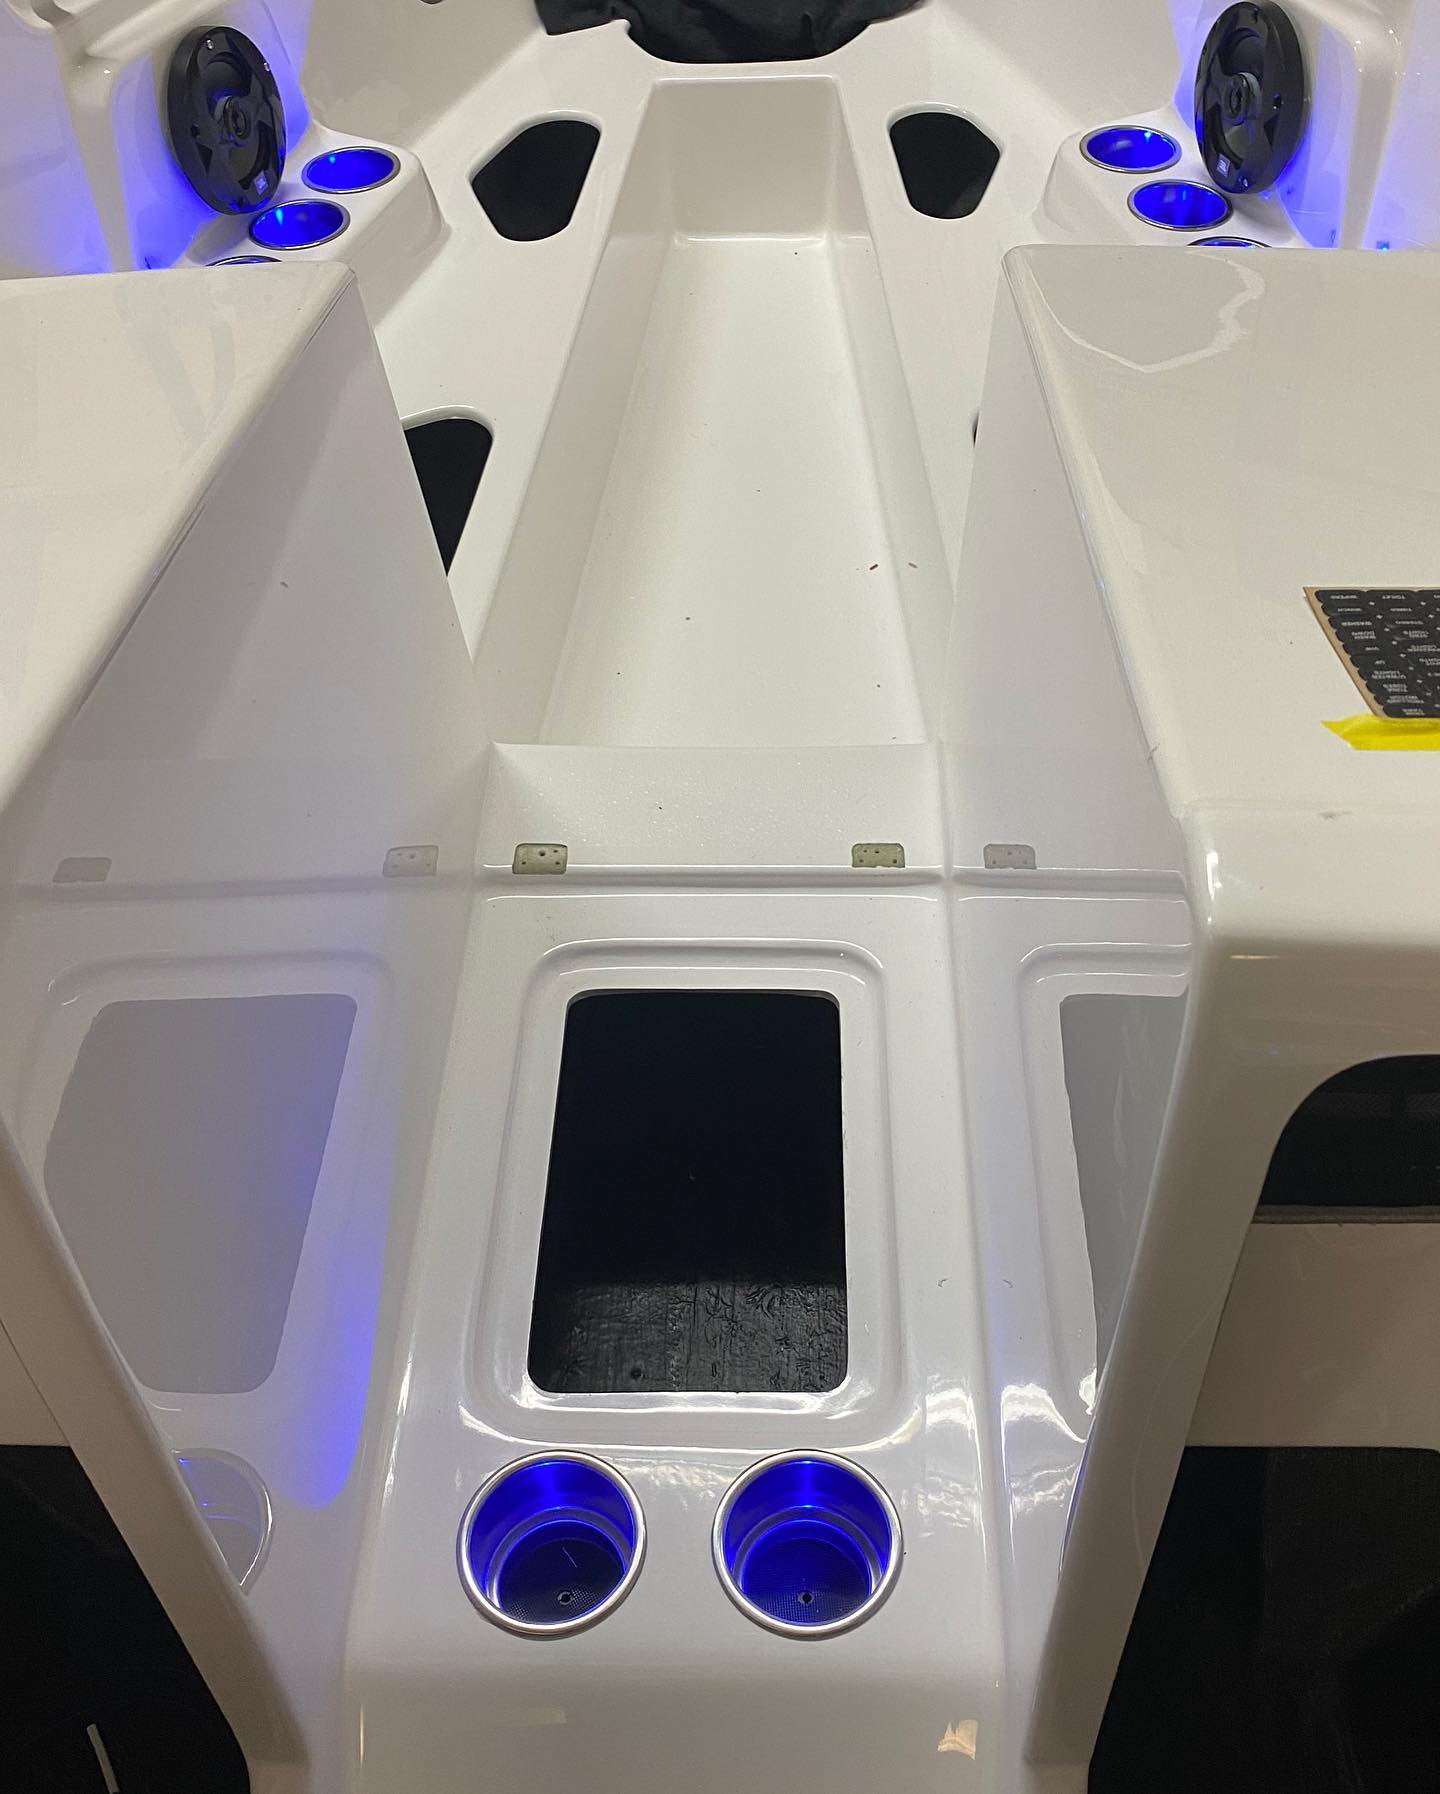 Check out the progress on the all new Force F21XB